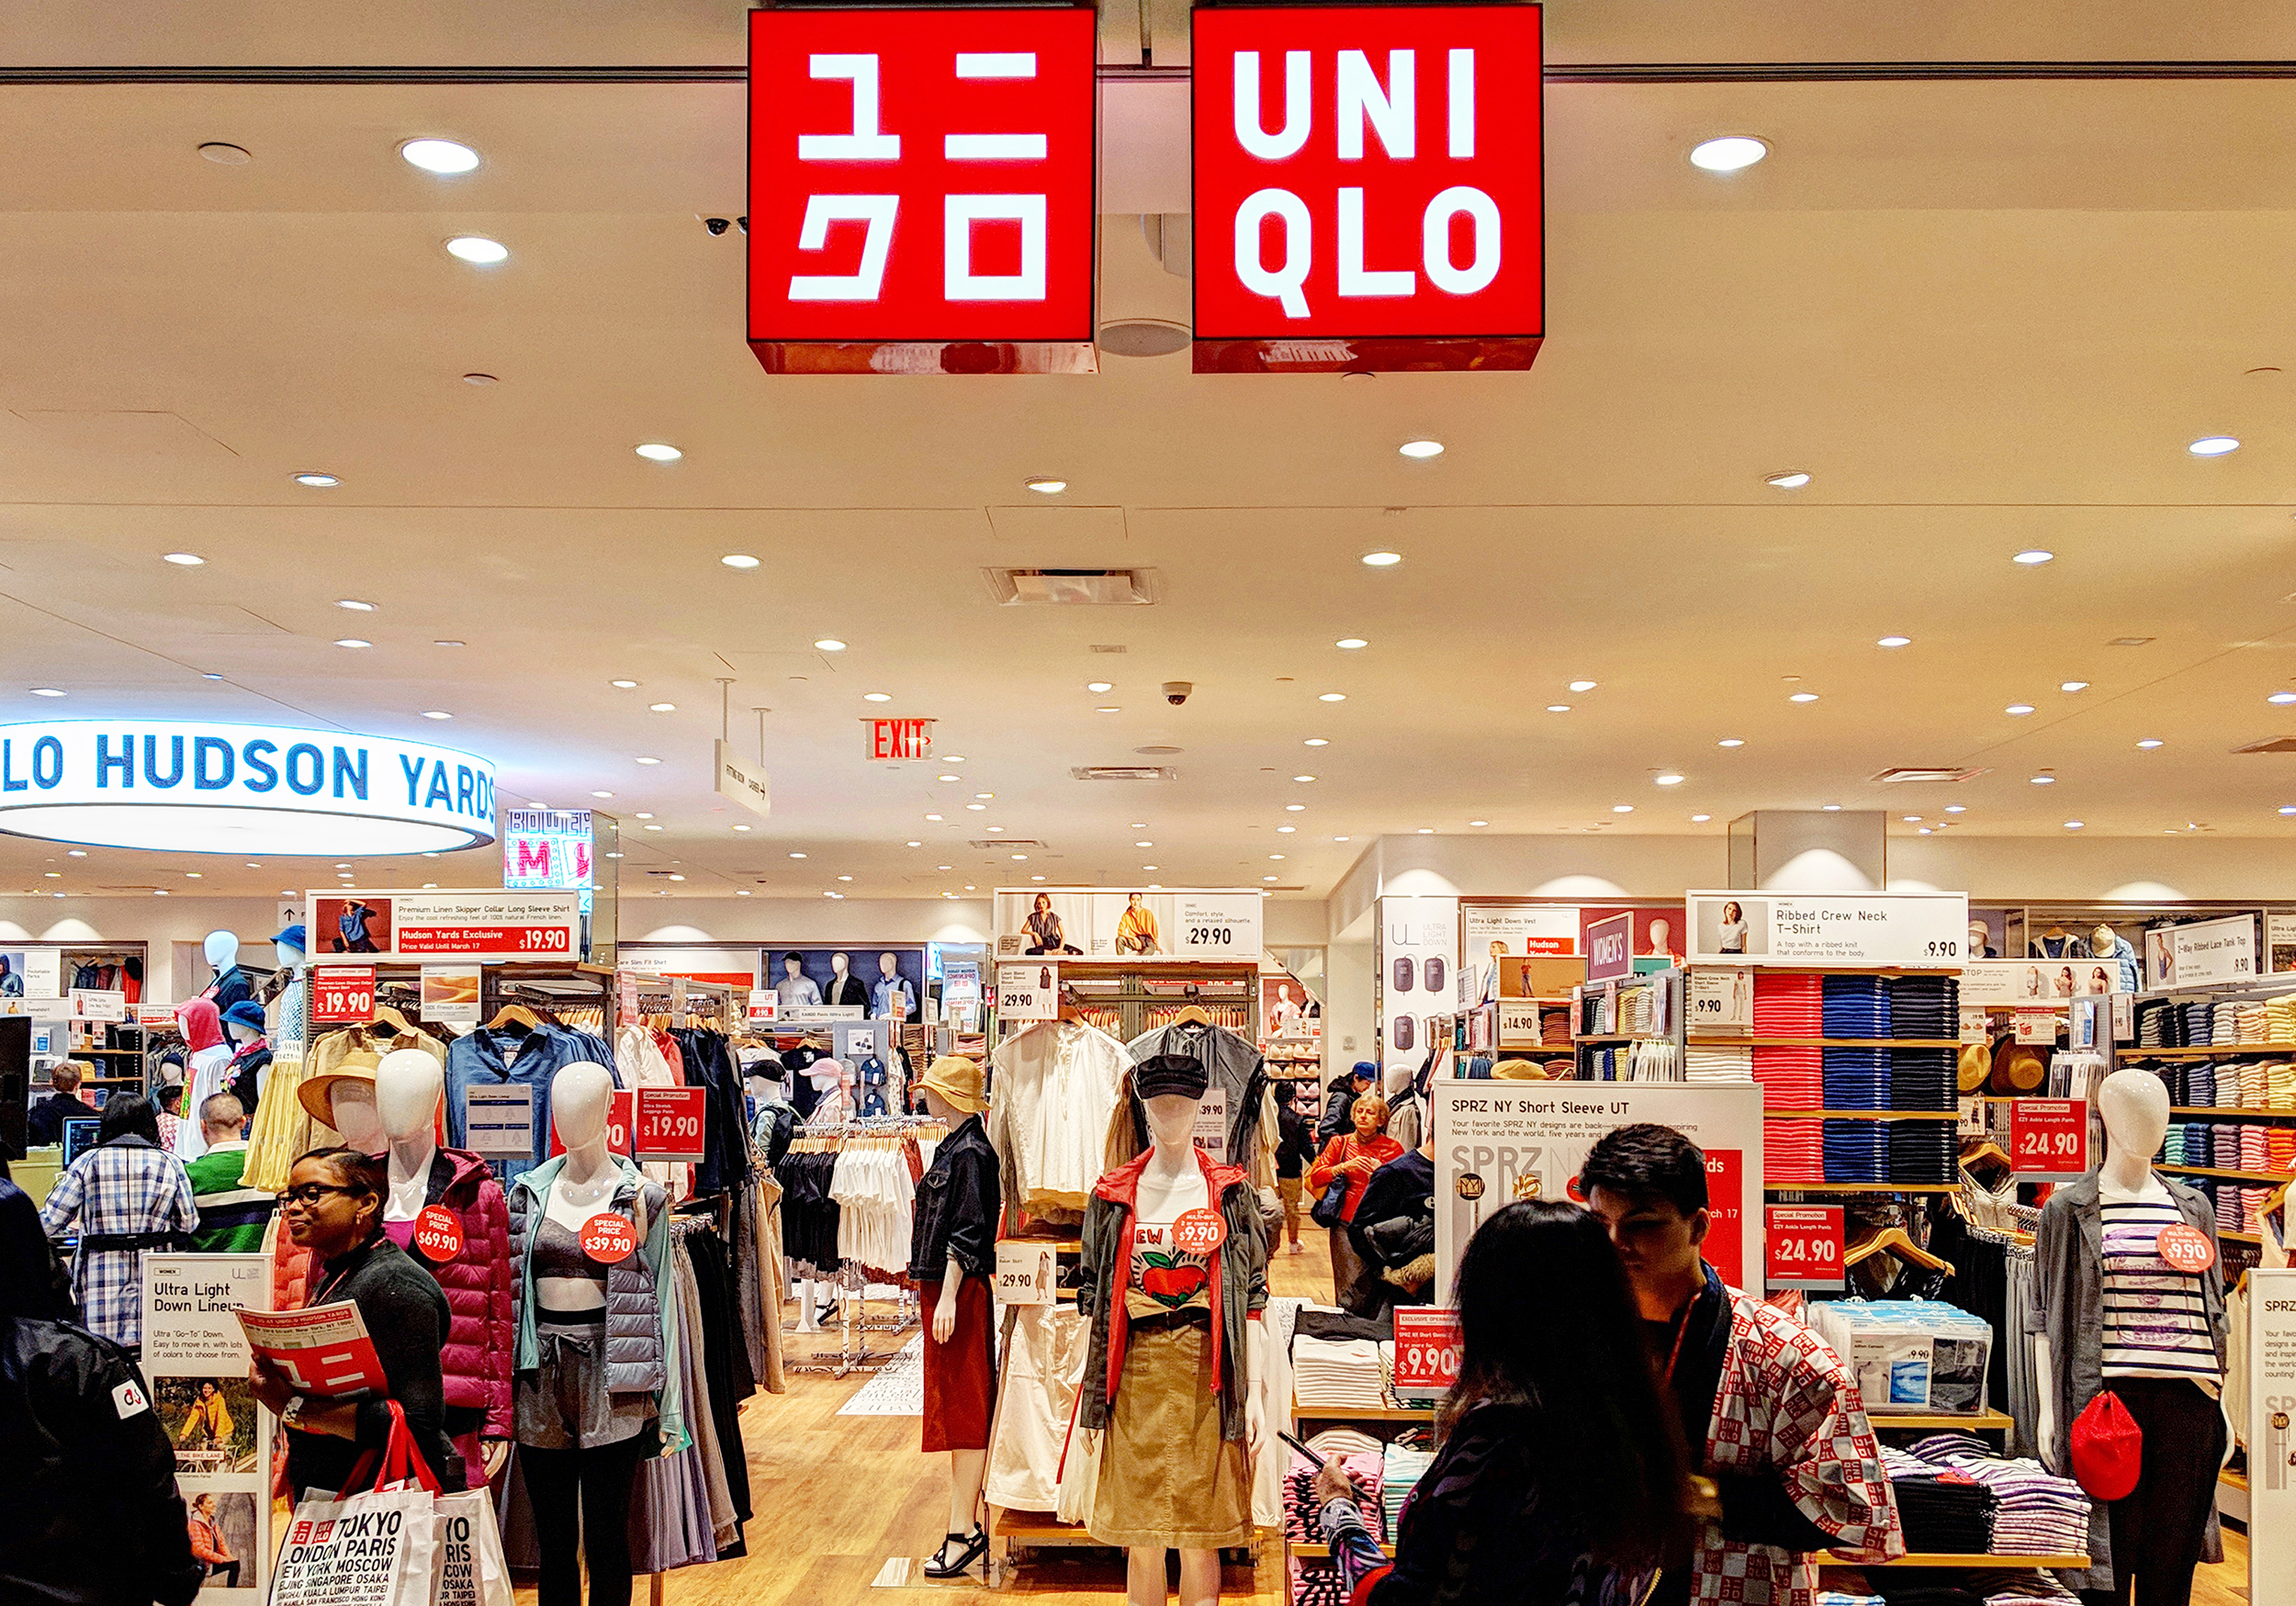 09 Uniqlo Hudson Yards.jpg